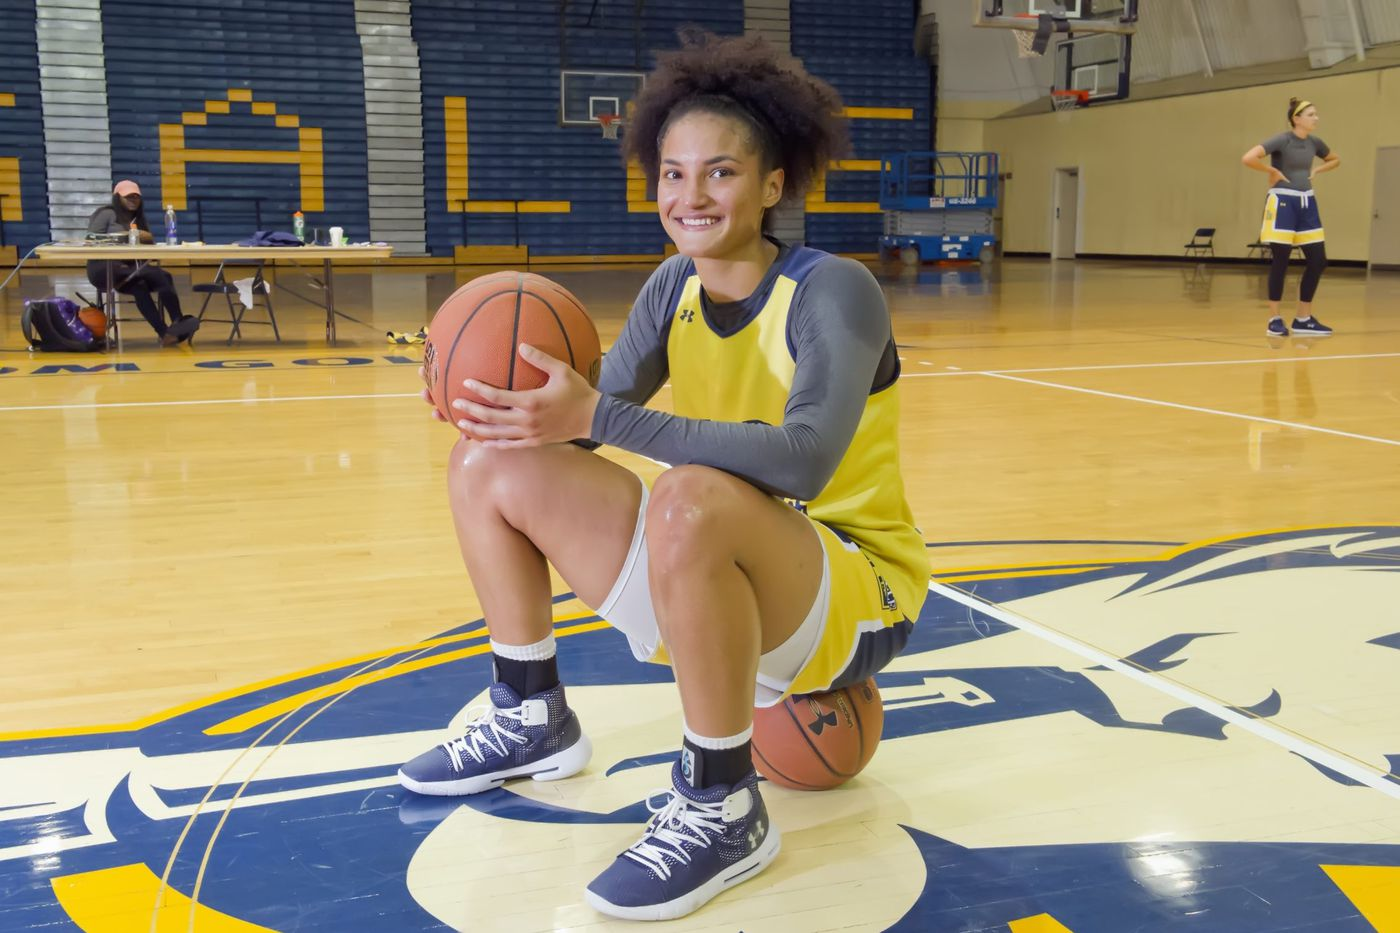 Jeryn Reese looks to regain scoring touch in senior season for La Salle women's basketball | Season preview